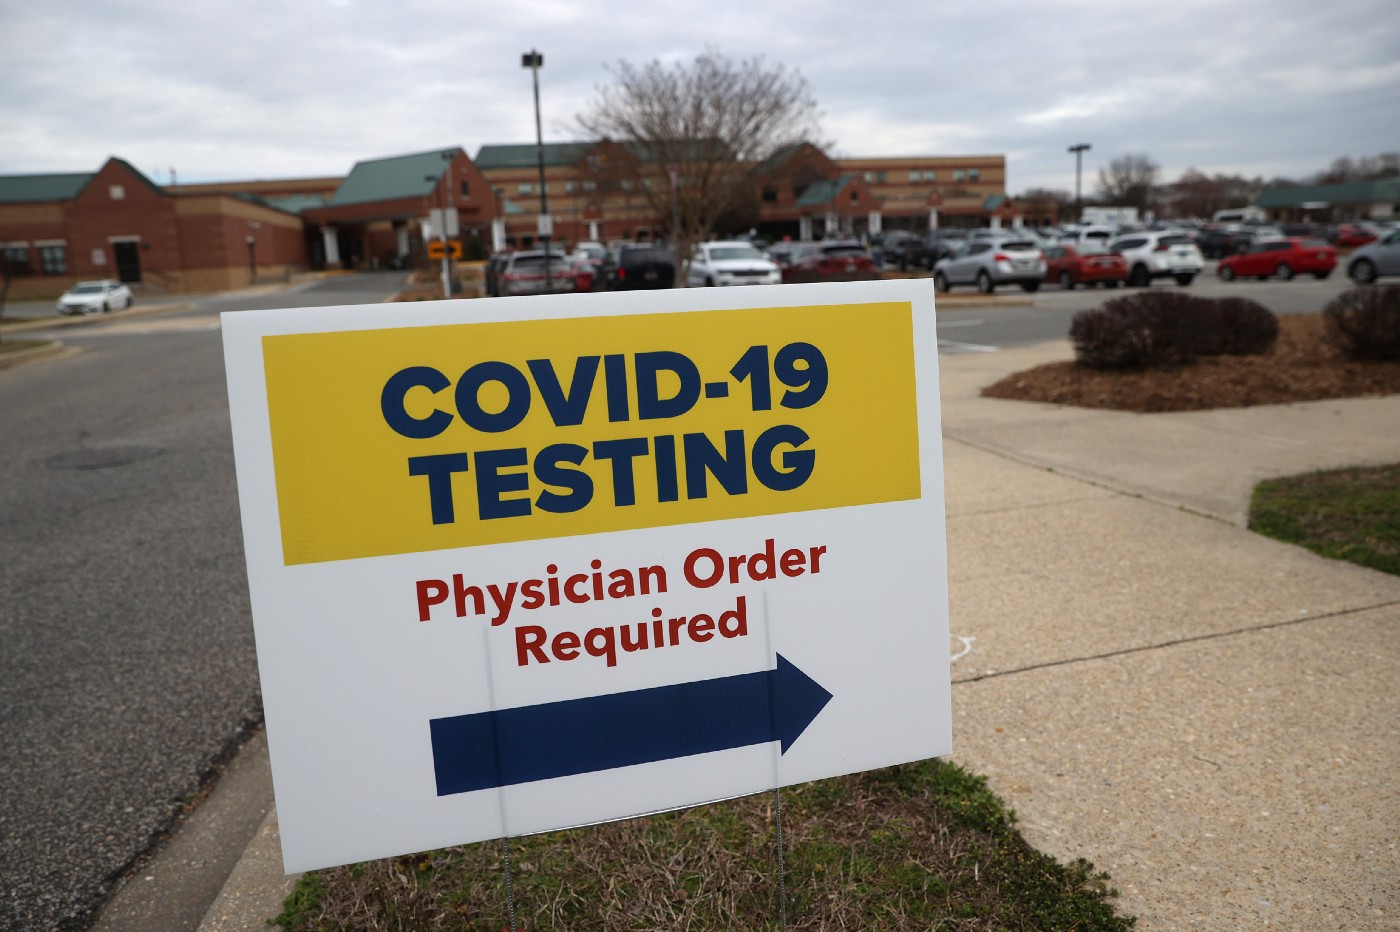 Signs directing patients to a COVID-19 virus testing drive-up location outside Medstar St. Mary's Hospital on March 17, 2020.